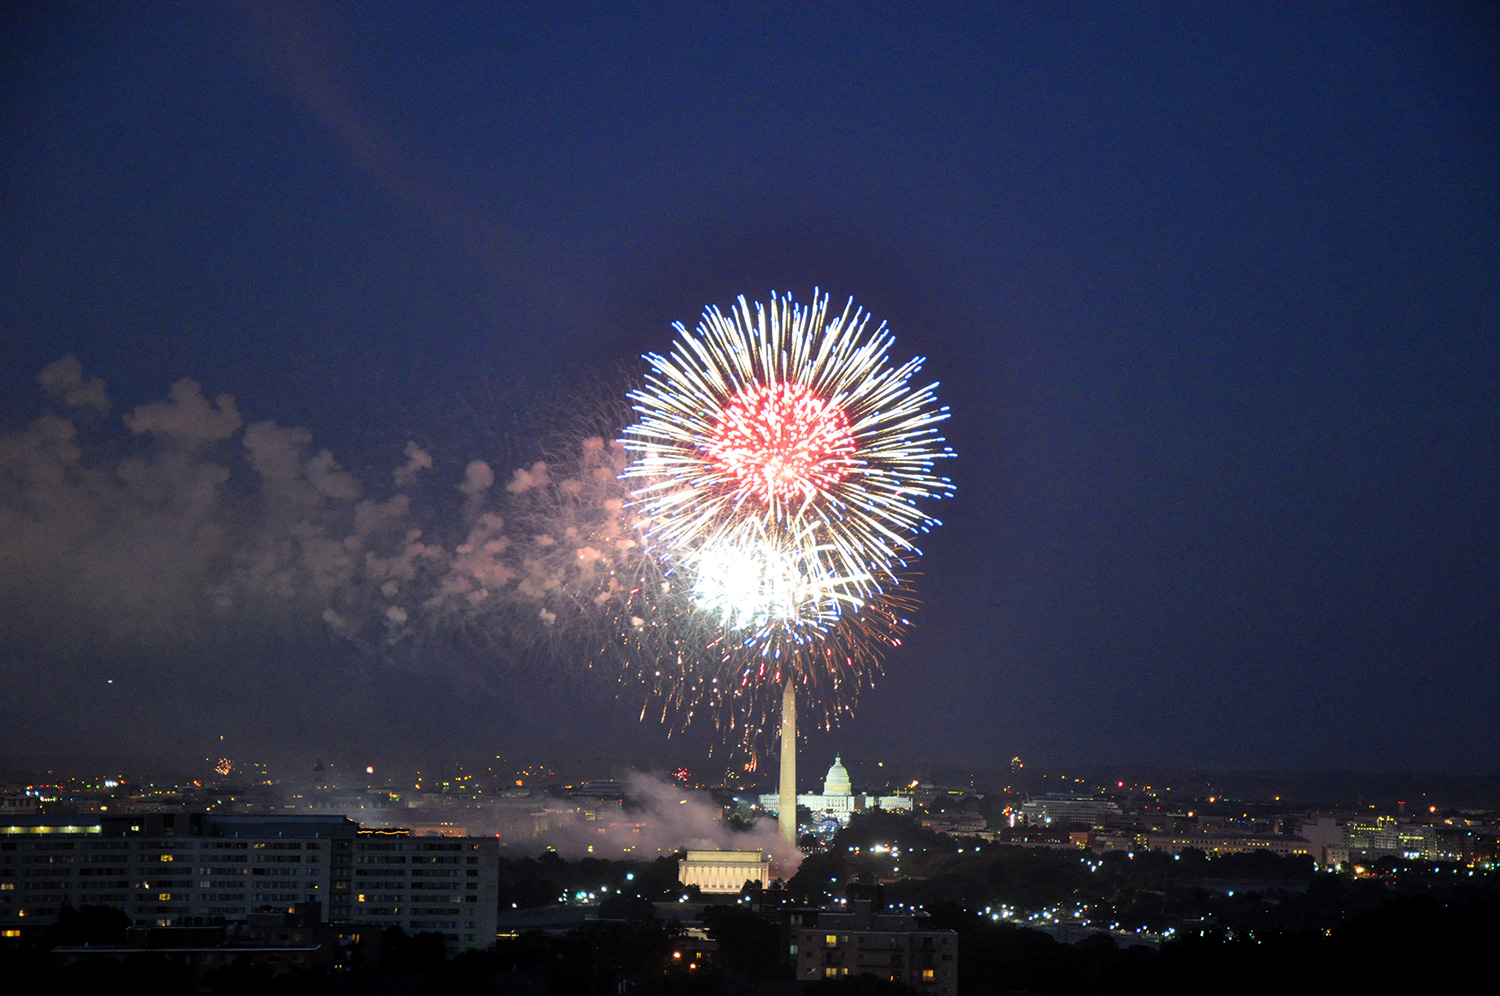 July 4th fireworks over DC from Arlington apartment (2010)